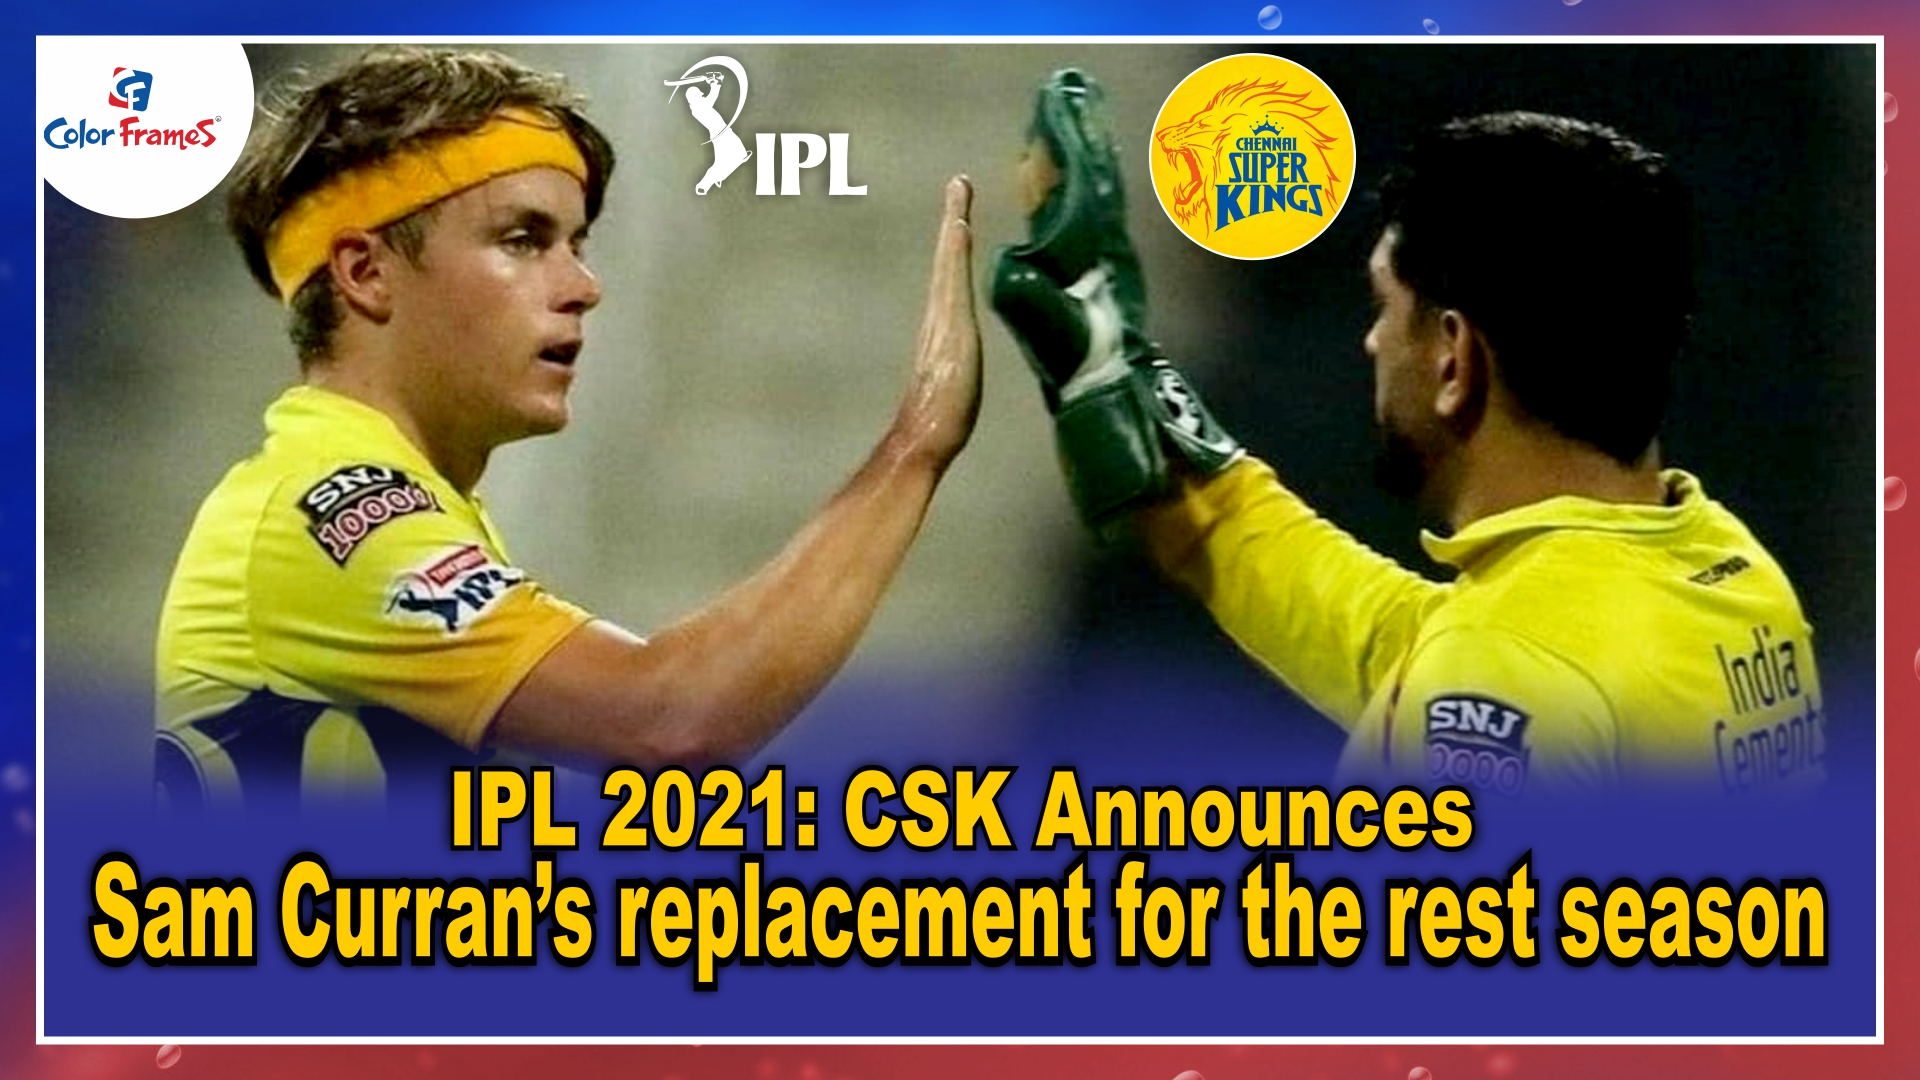 IPL 2021: CSK announces Sam Curran's replacement for the rest season